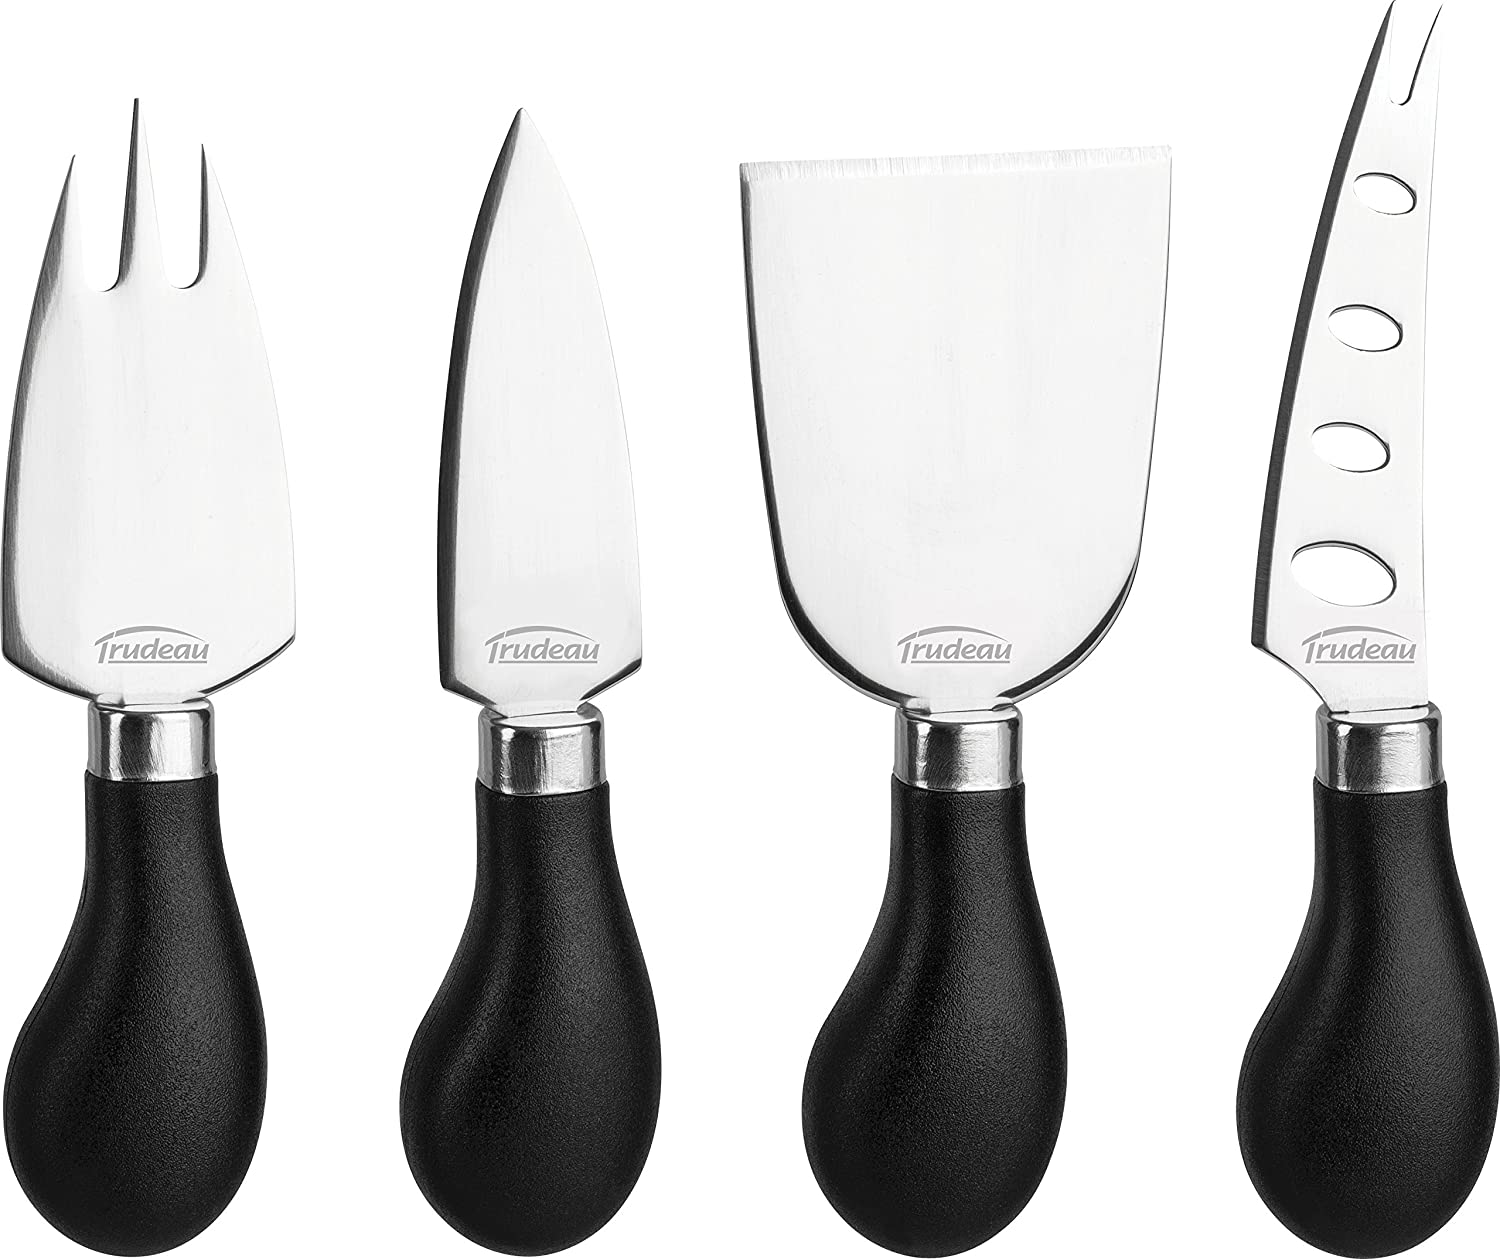 Trudeau Maison Cheese Knives - Set of 4 (Black/Stainless Steel) 0571079